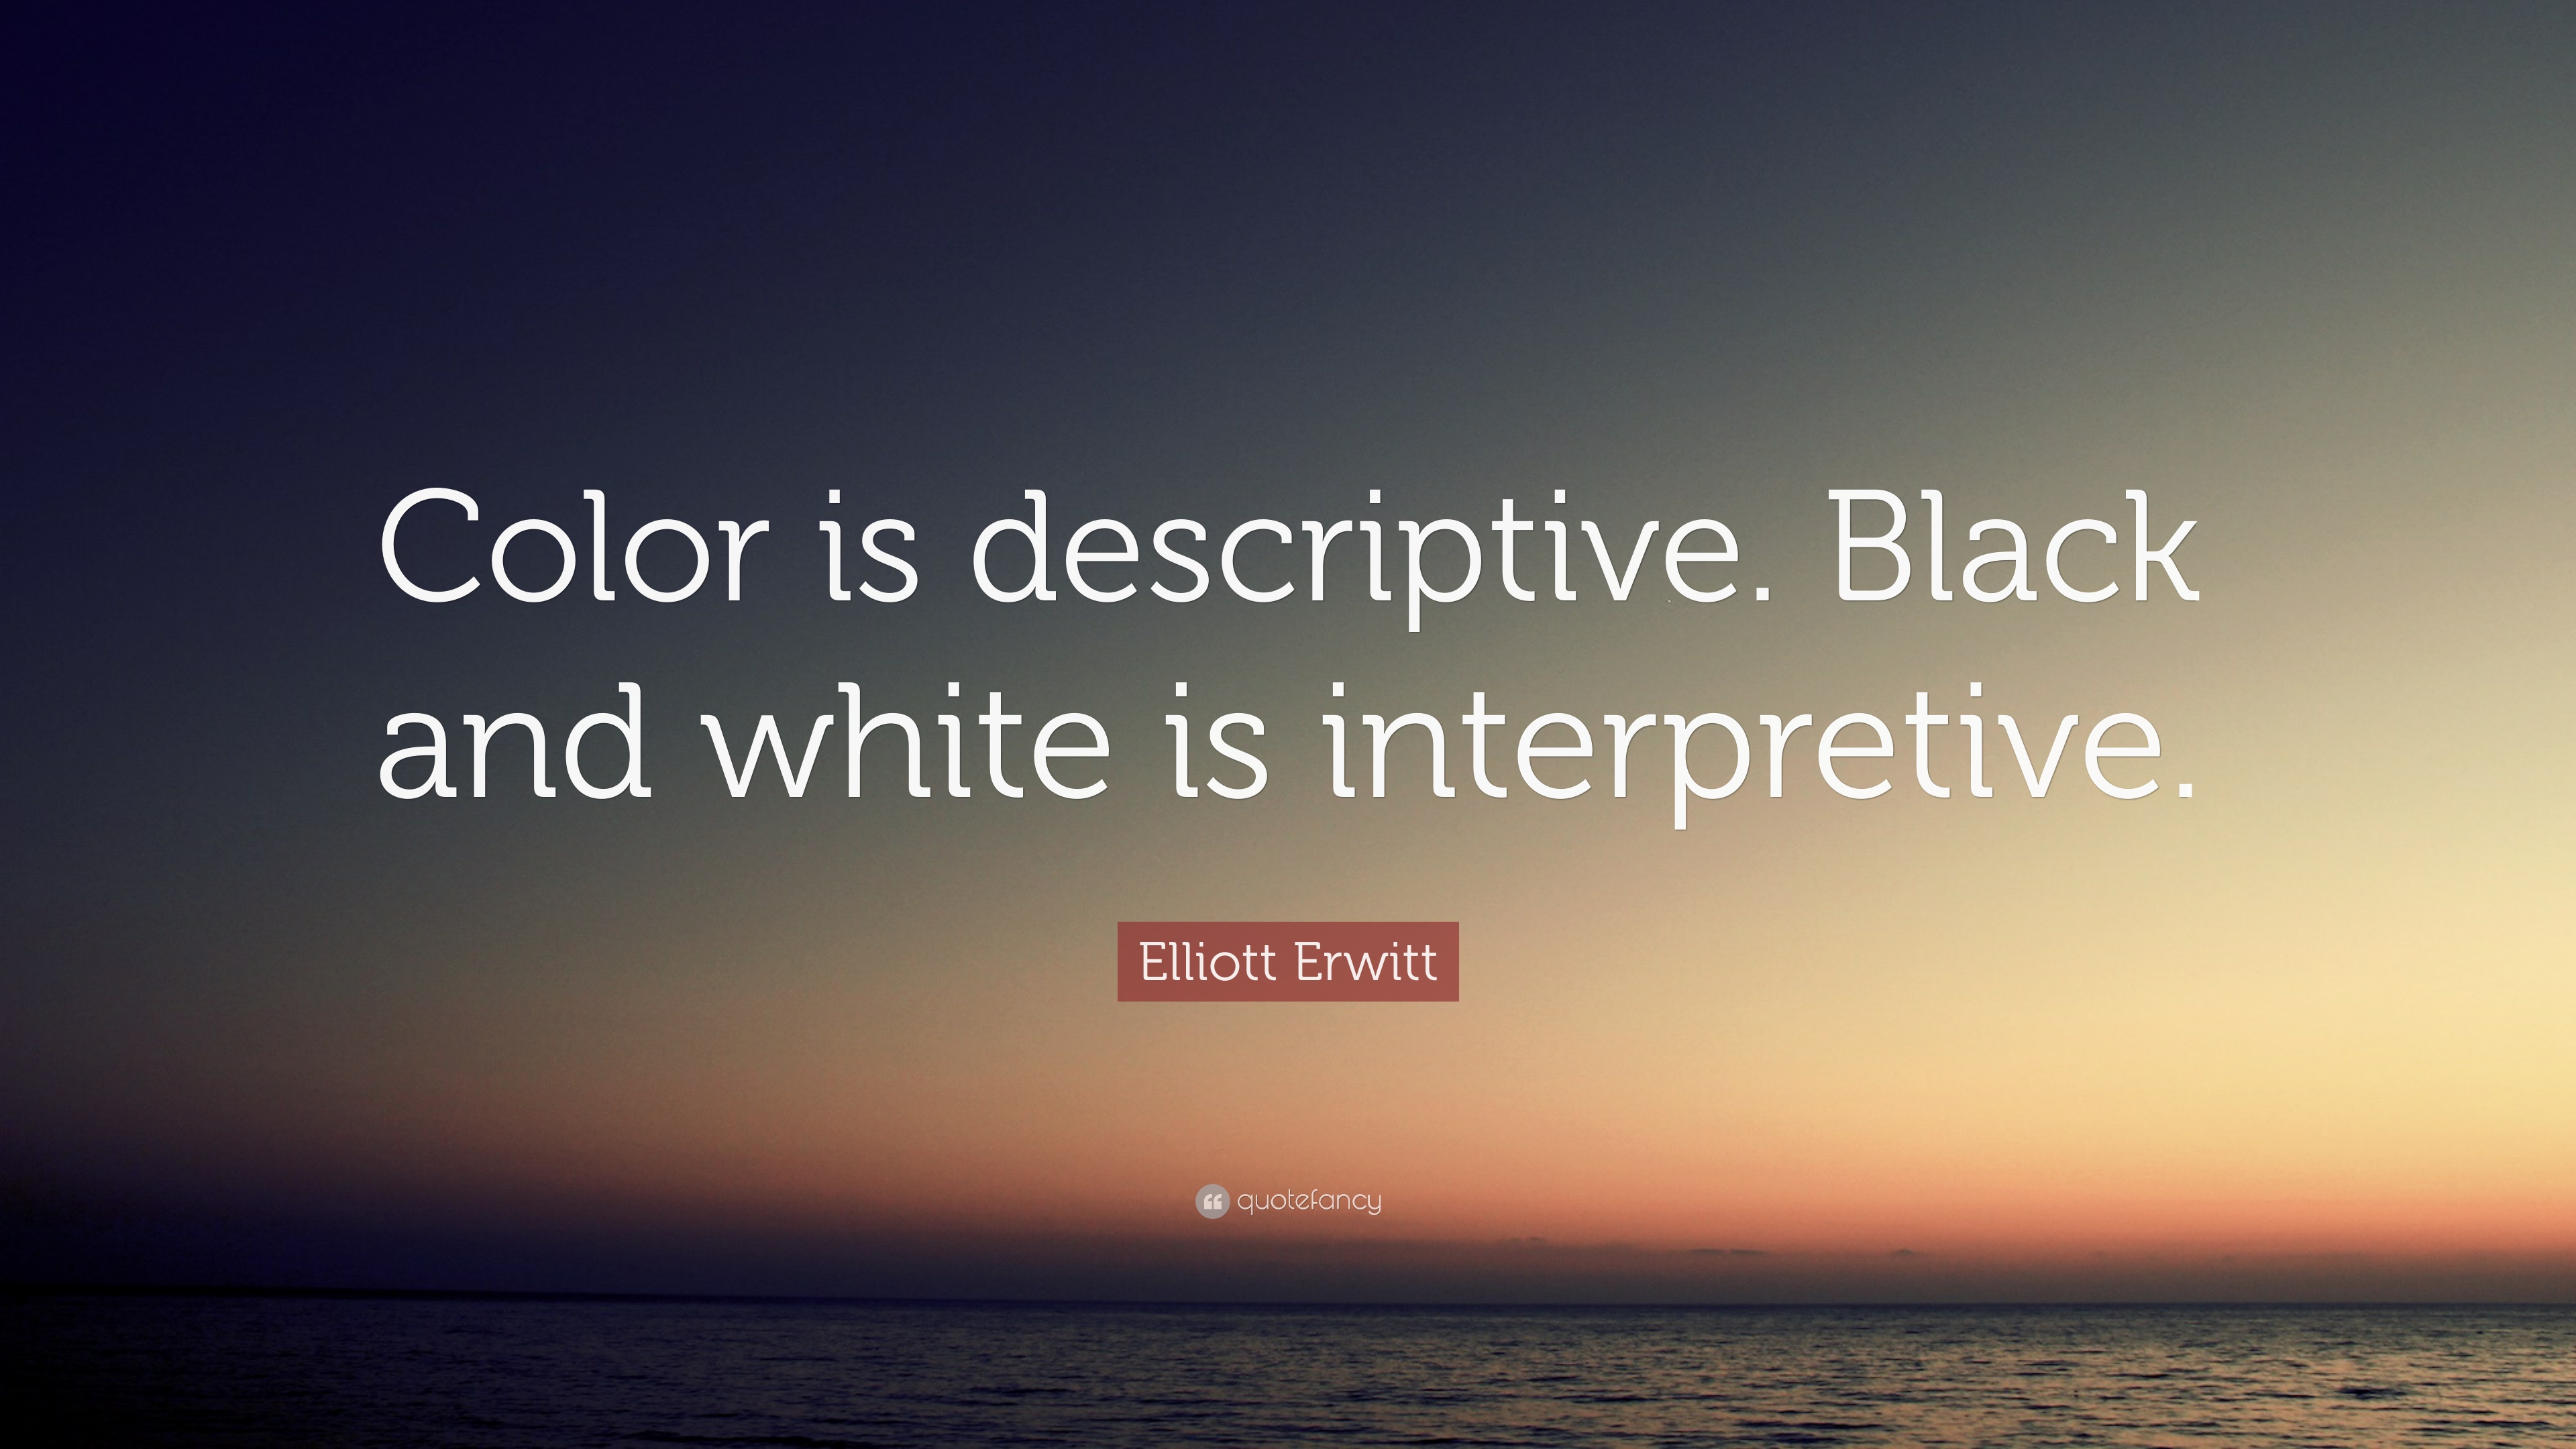 Elliott erwitt quote color is descriptive black and white is interpretive